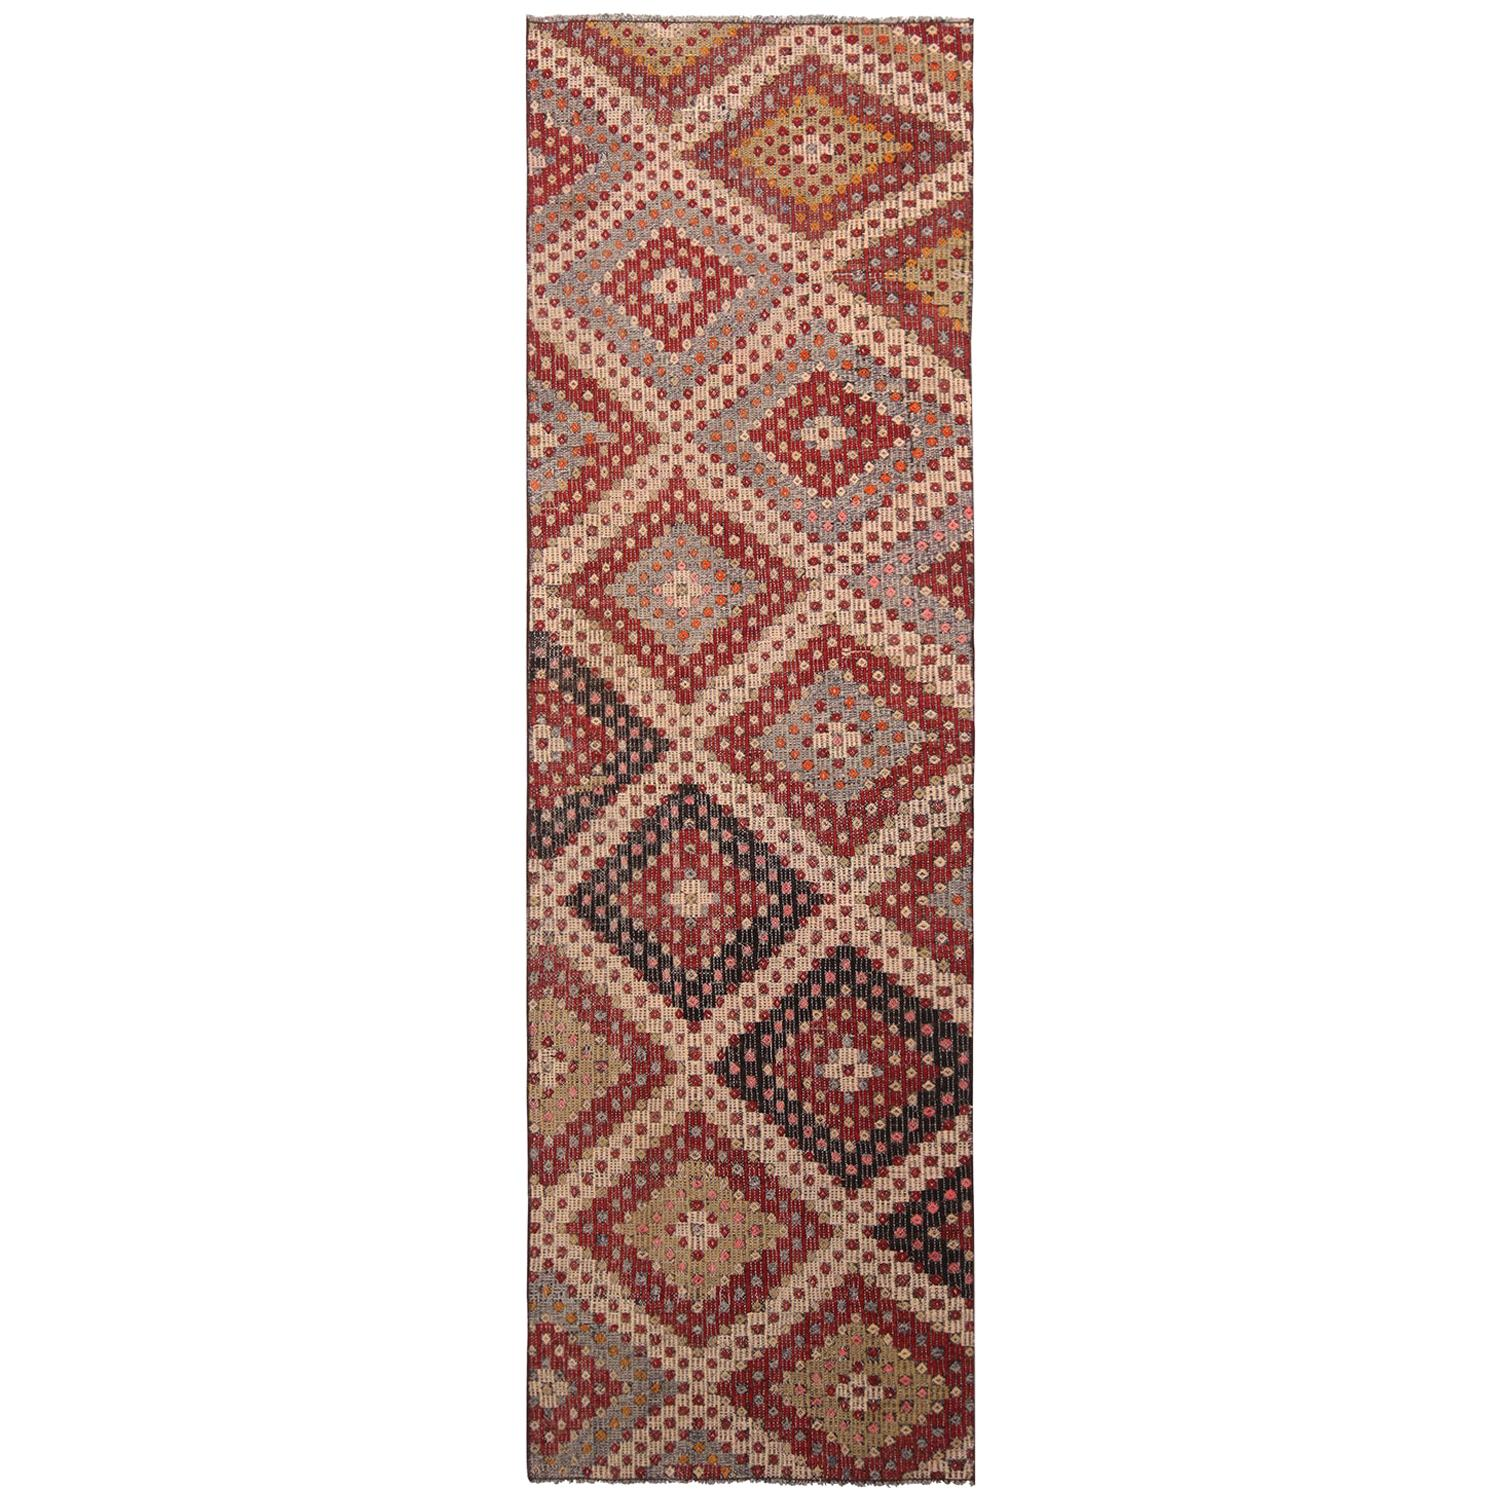 Vintage Midcentury Geometric Red Blue And Green Wool Kilim Rug For Sale At 1stdibs